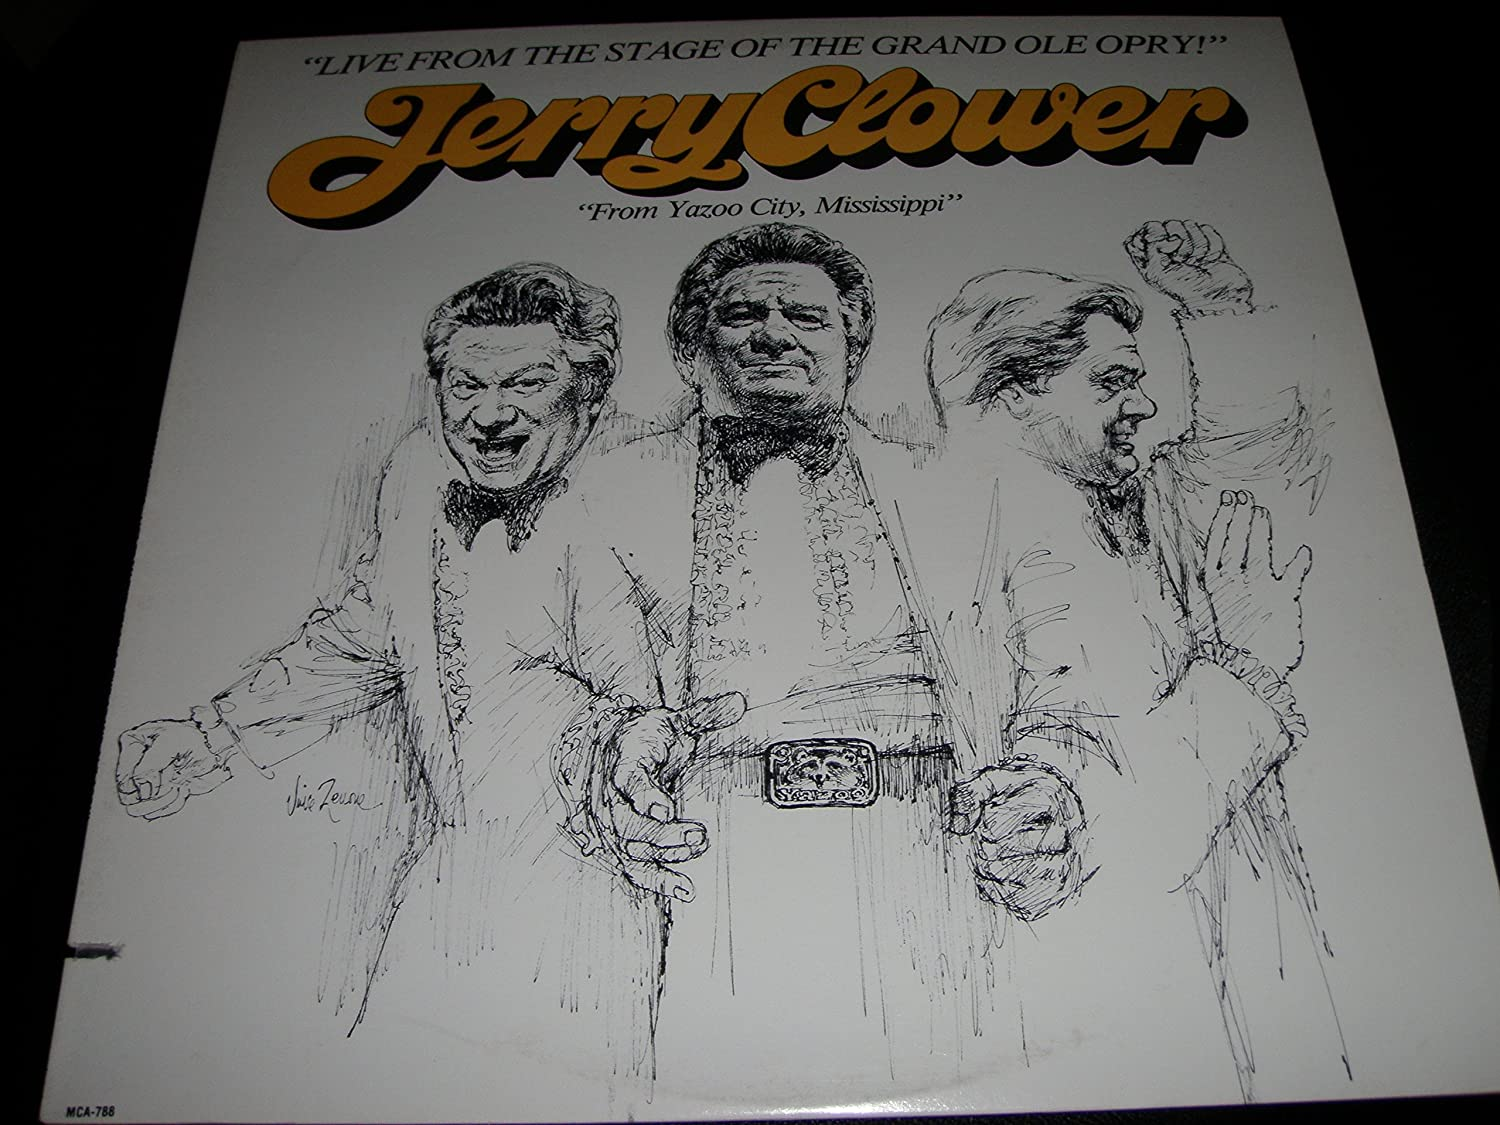 Jerry clower live from the stage of the grand ole opry from yazoo jerry clower live from the stage of the grand ole opry from yazoo city mississippi amazon music arubaitofo Gallery